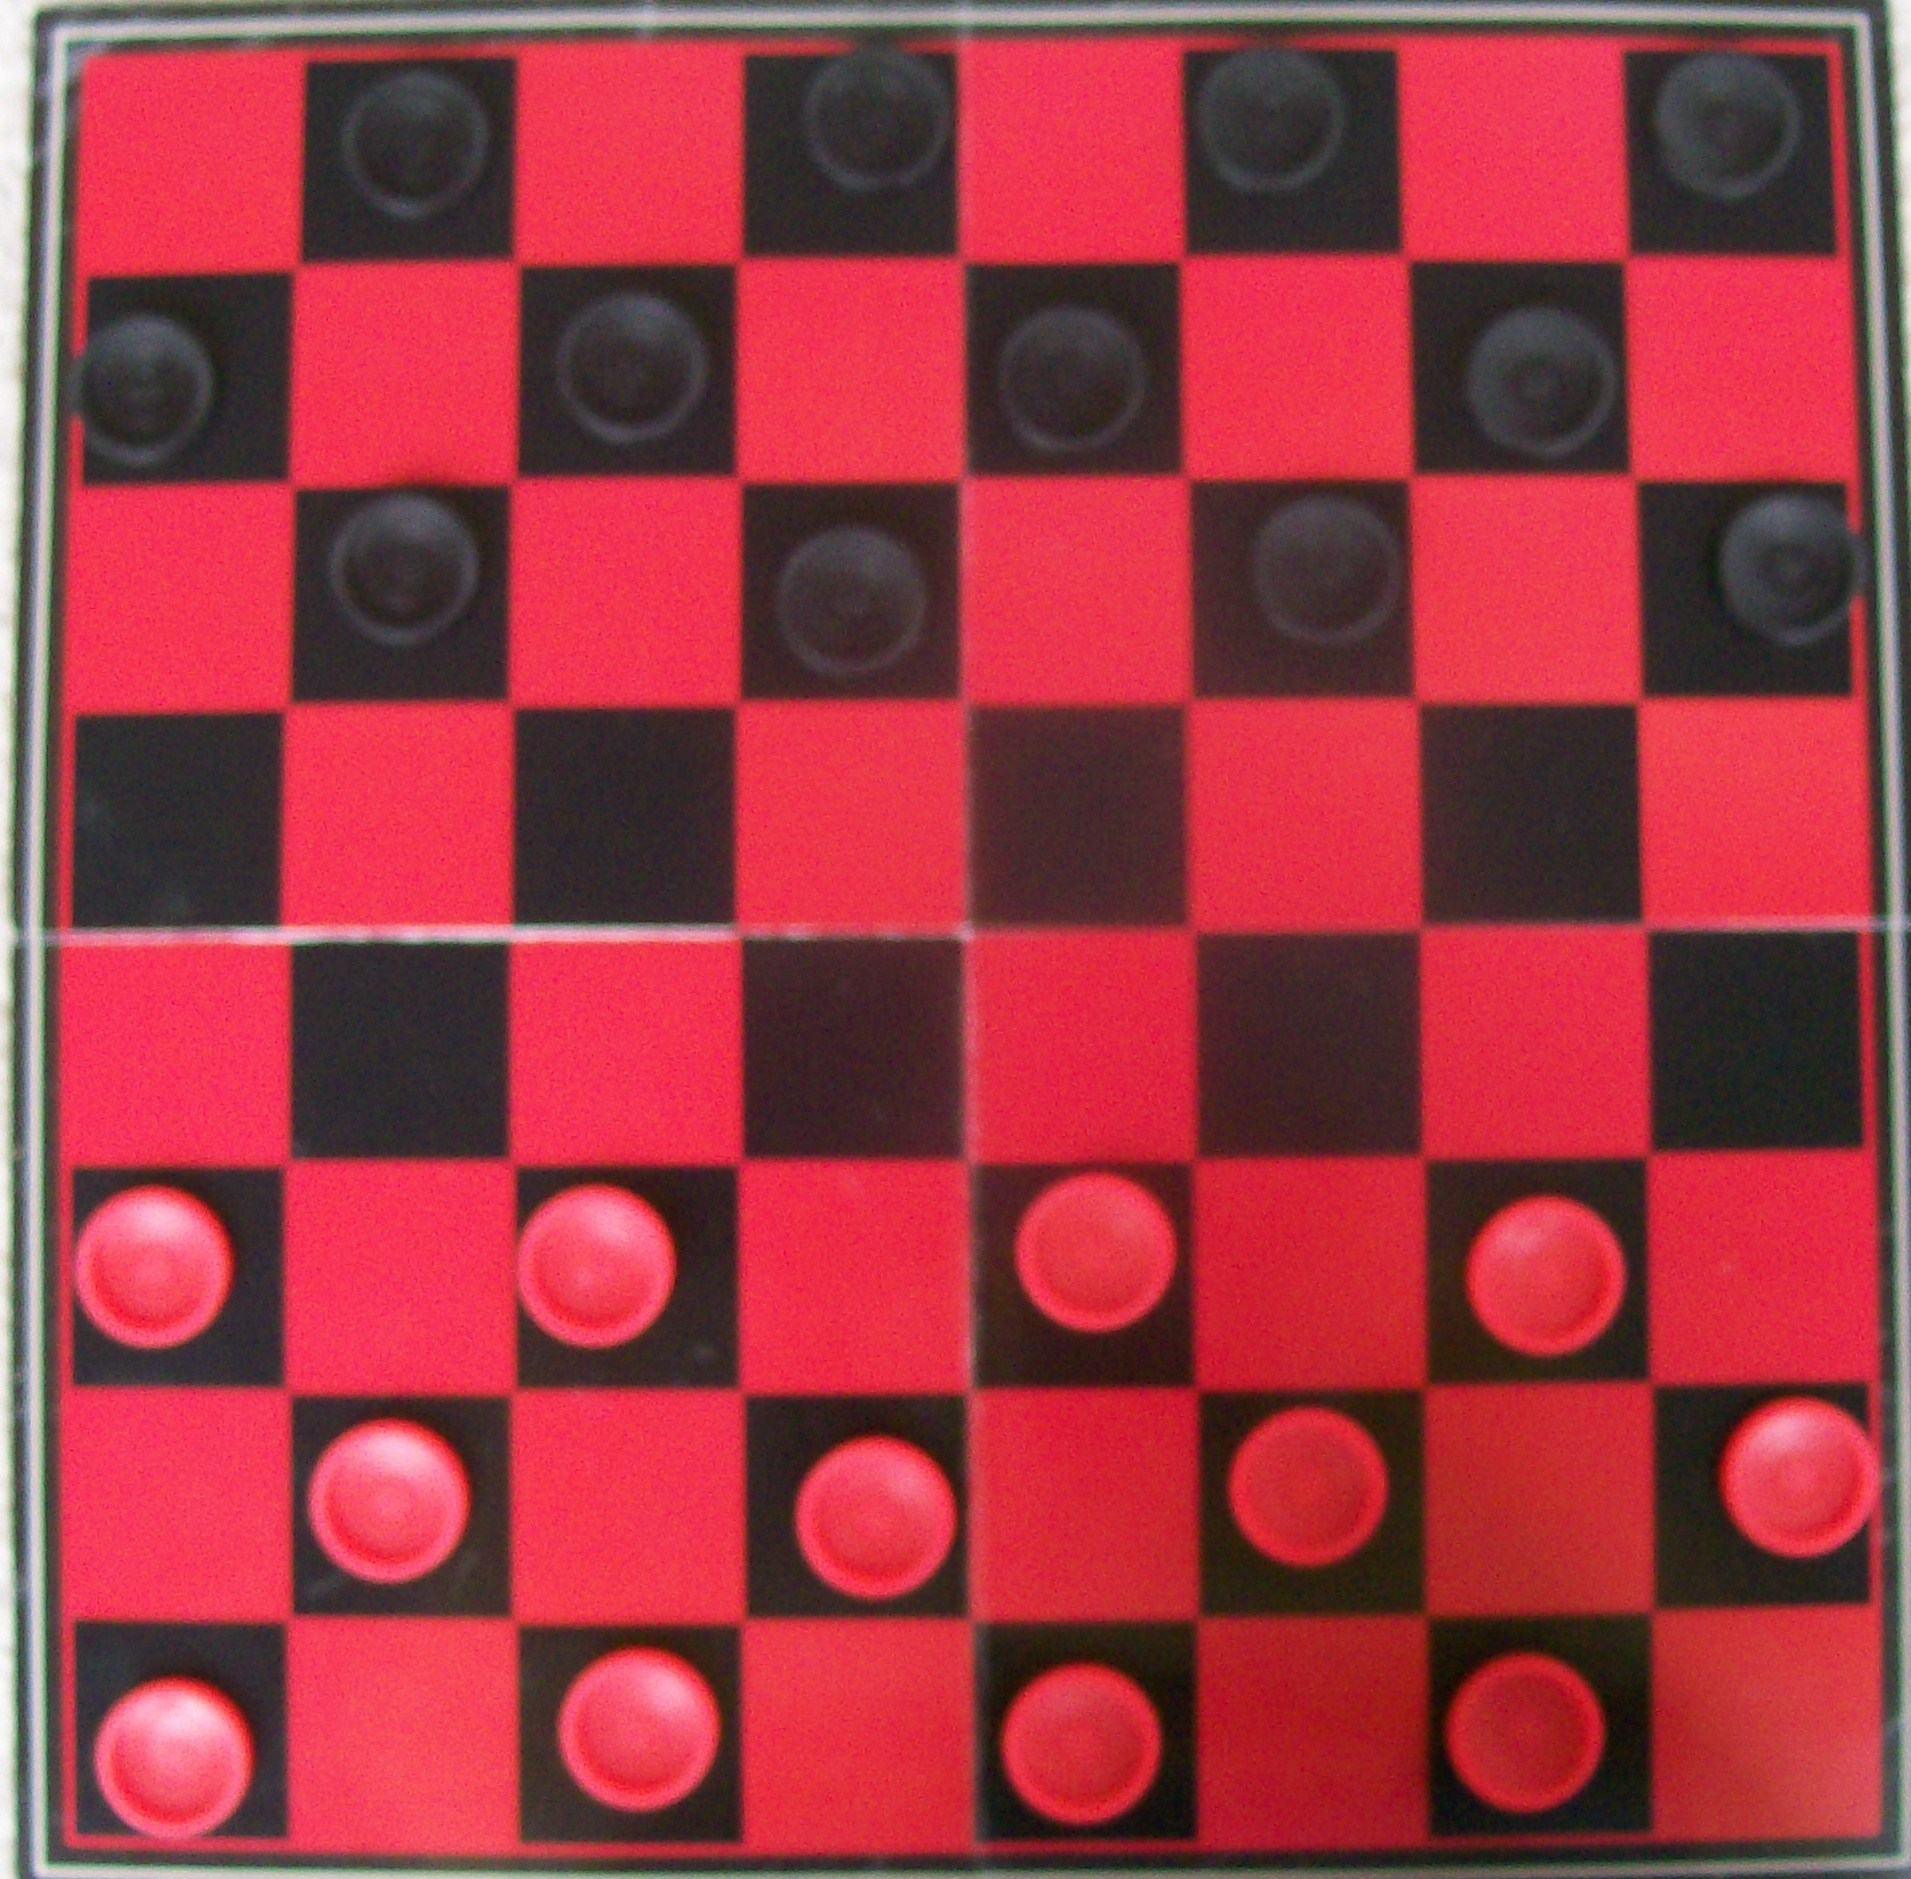 2 player checkers game